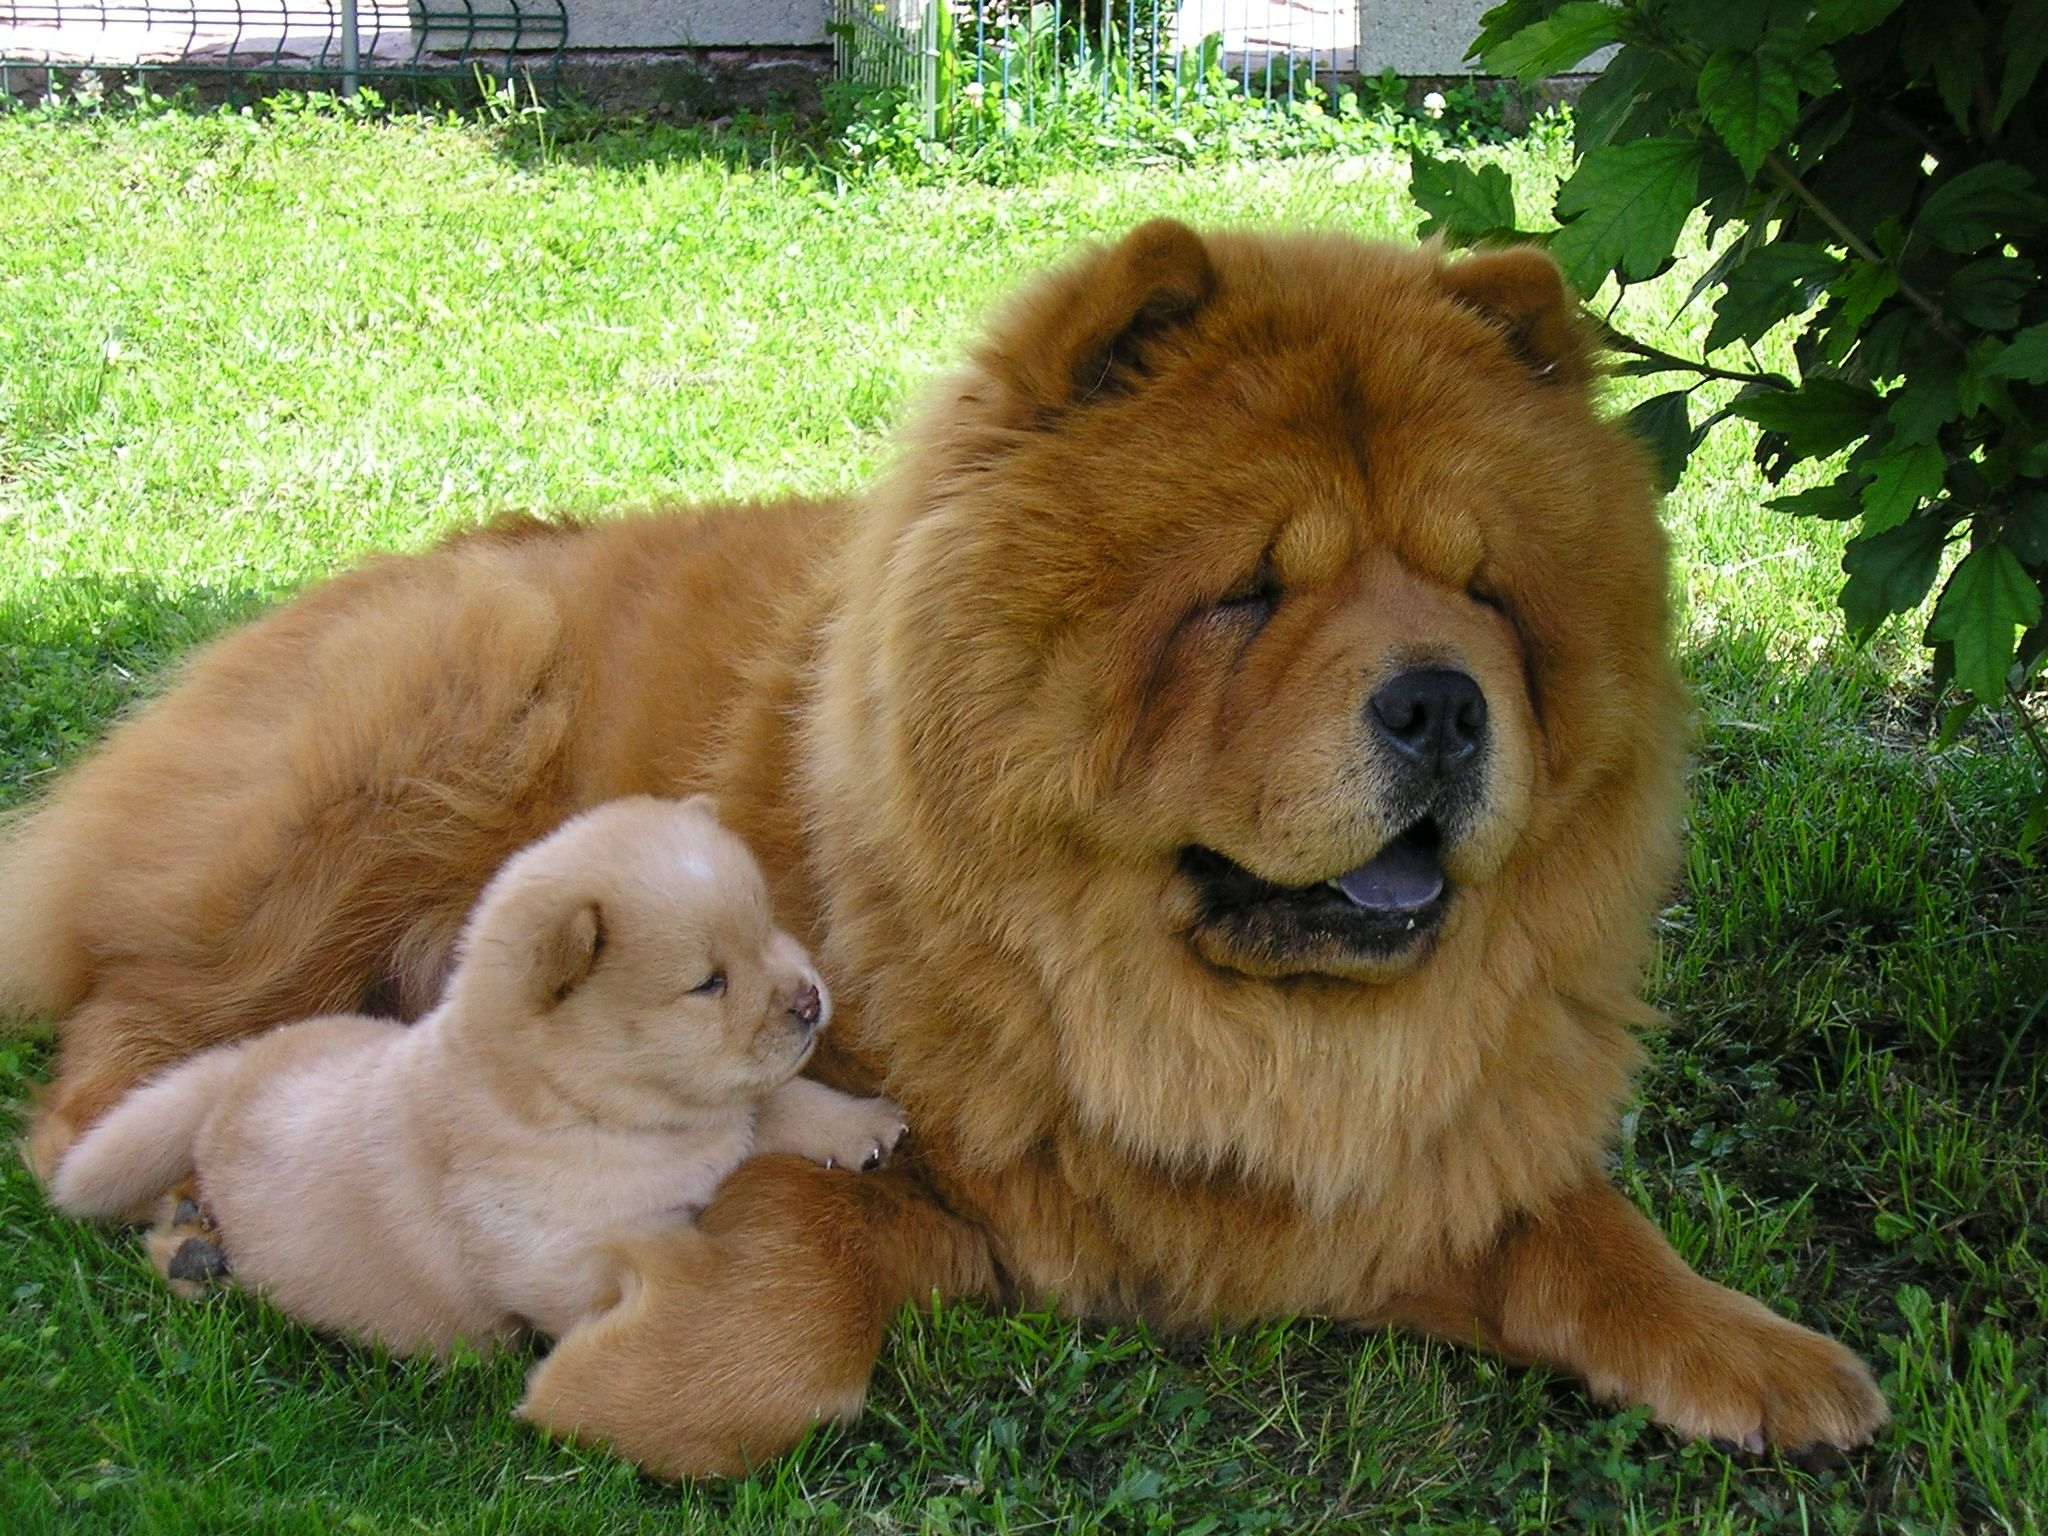 Best Chow Chow Images On Pinterest Chow Chow Friends And - This instagram chow chow looks like a fluffy potato and its so cute it doesnt even look real